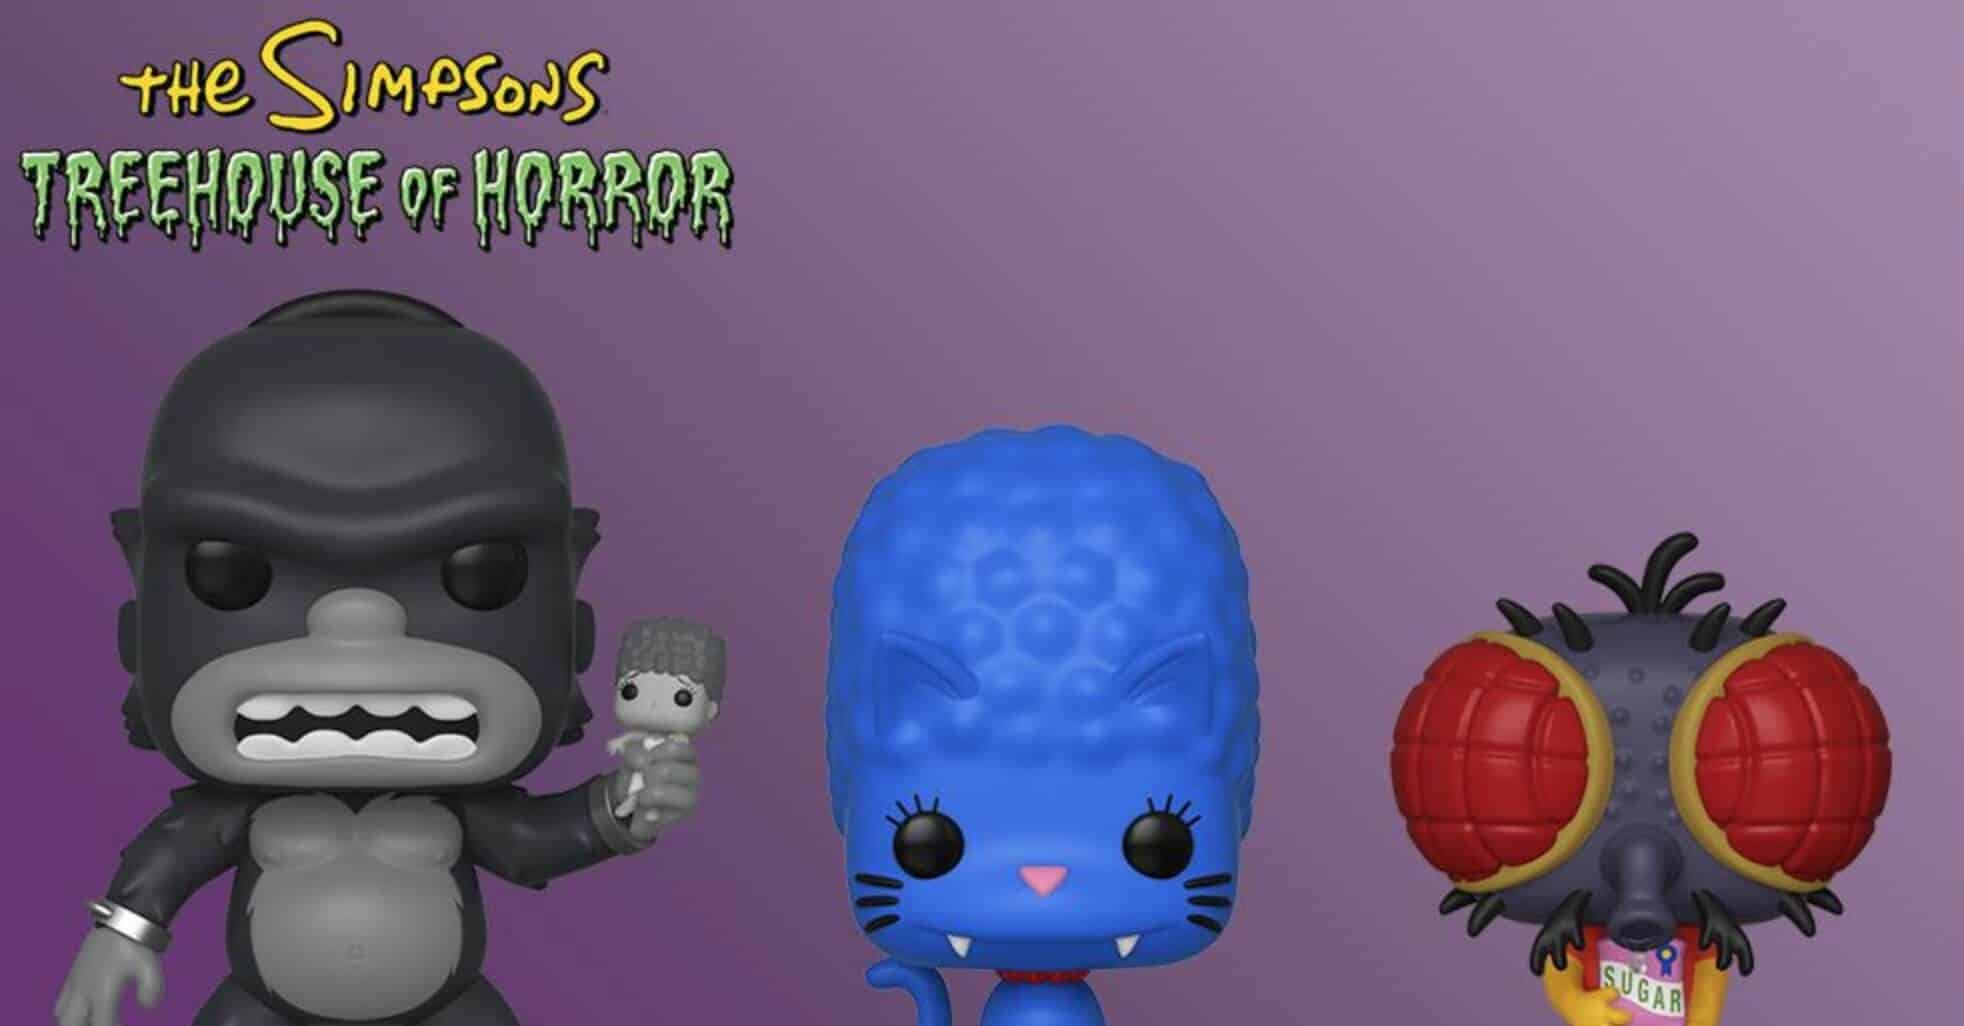 the simpsons treehouse of horror funk pops image2 - THE SIMPSONS TREEHOUSE OF HORROR Funko Pops Announced